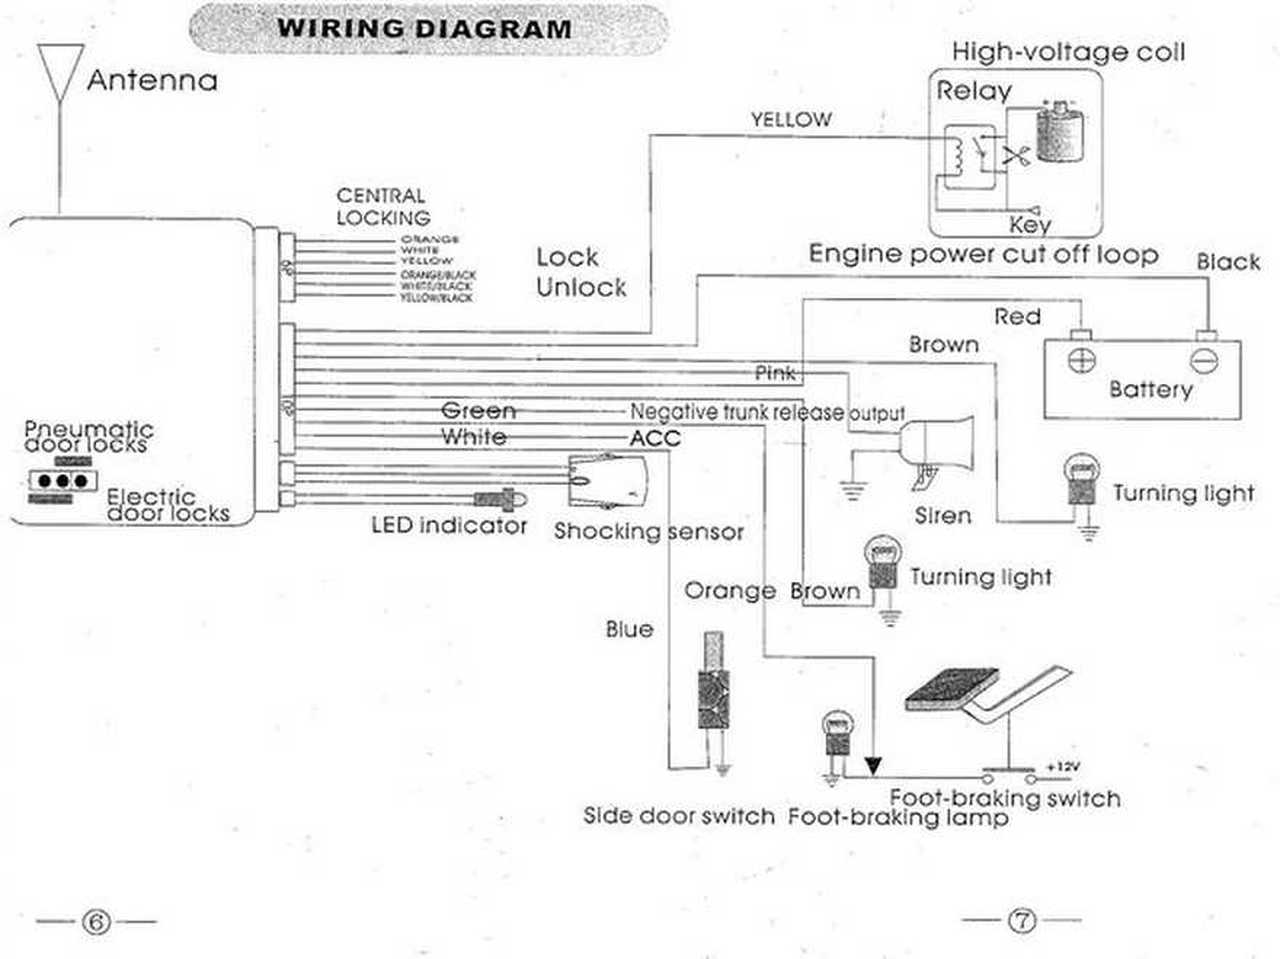 iveco daily 2007 wiring diagram 3 way switch installation central locking library